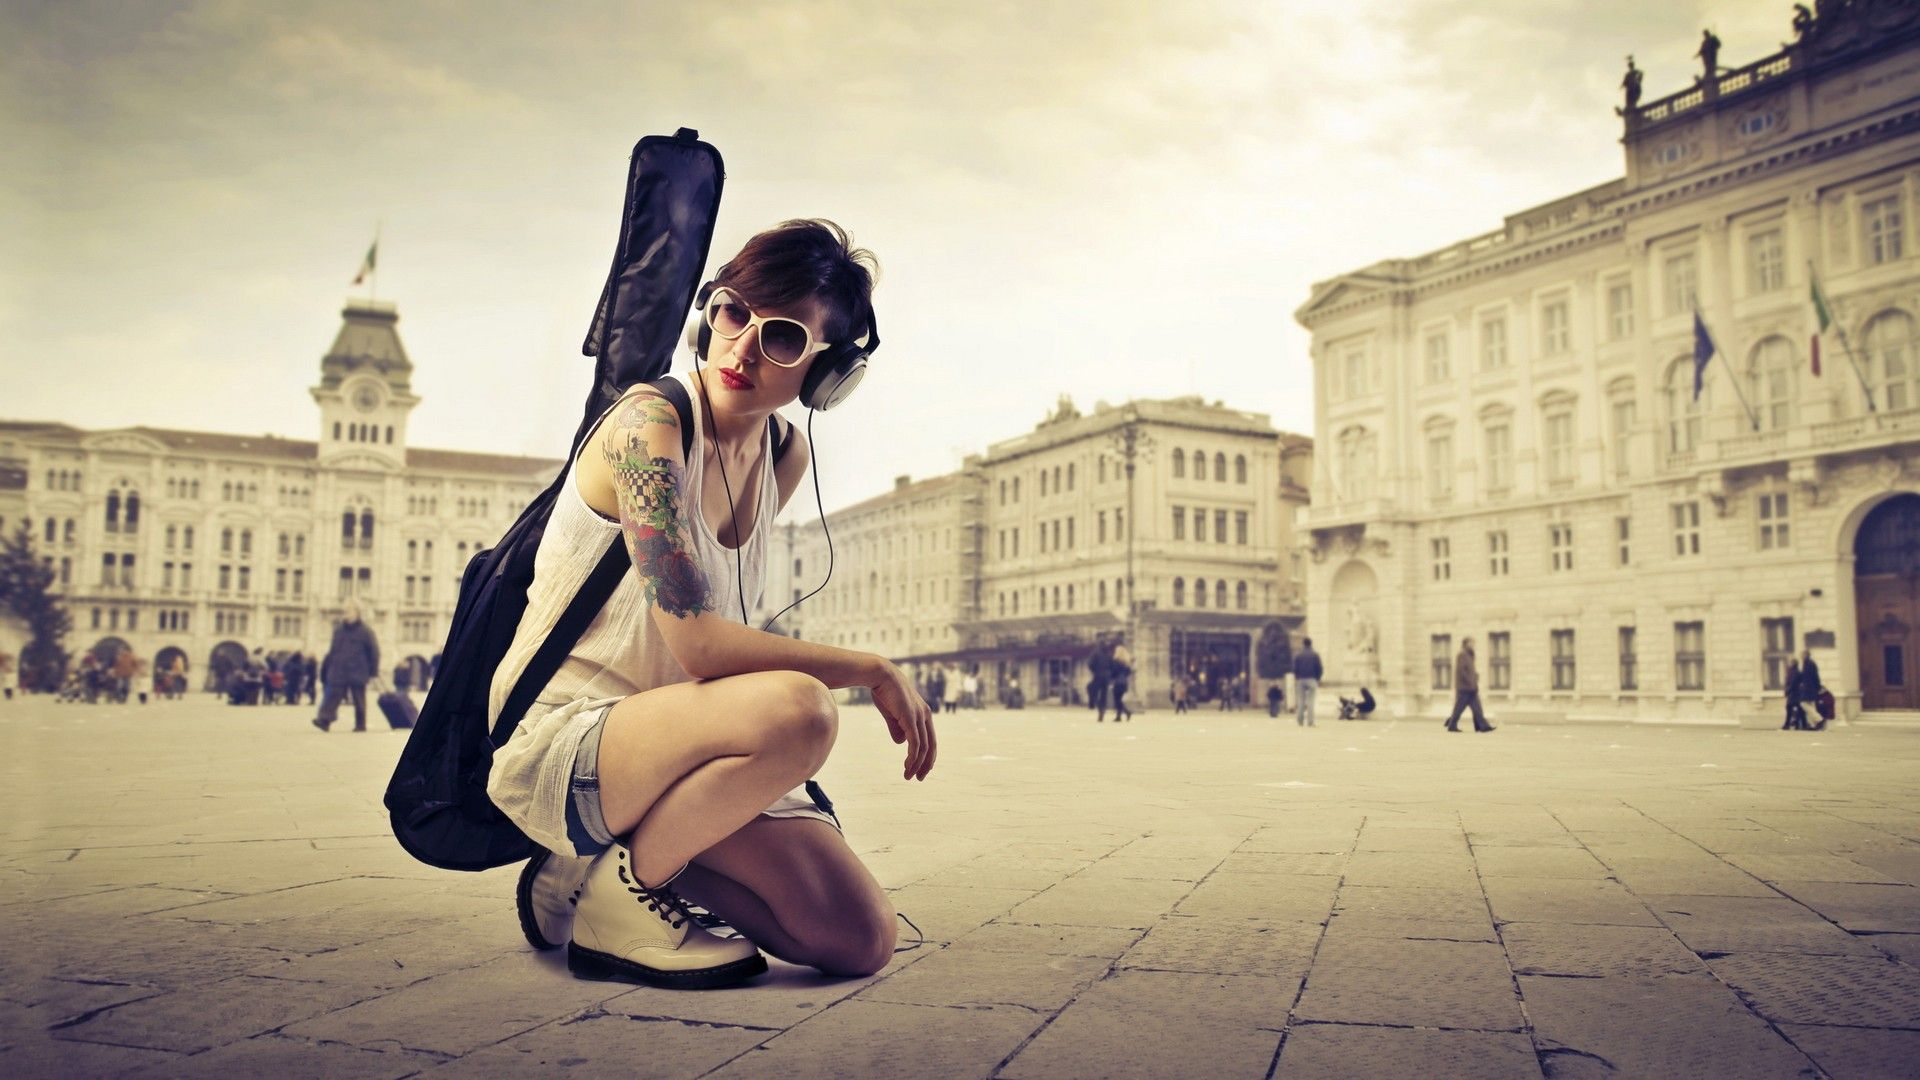 Hd Wallpaper Girls Wallpapers For Facebook Profile: 130+ Cool Stylish Profile Pictures For Facebook For Girls